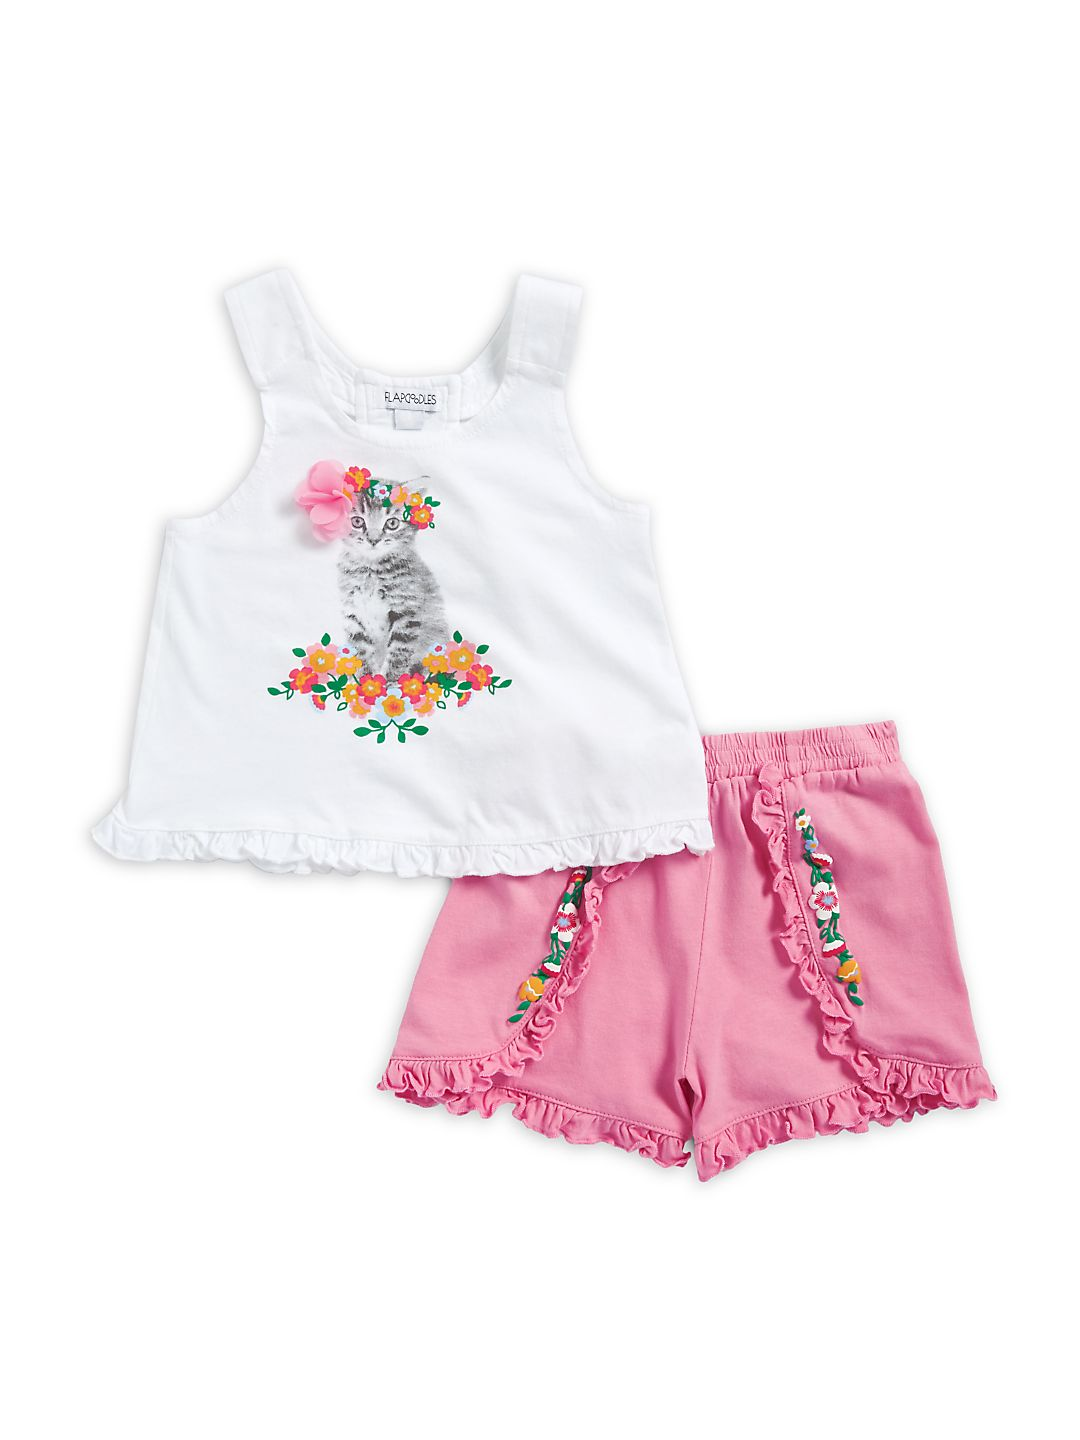 Little Girl's Two-Piece Kitten Floral Shirt and Shorts